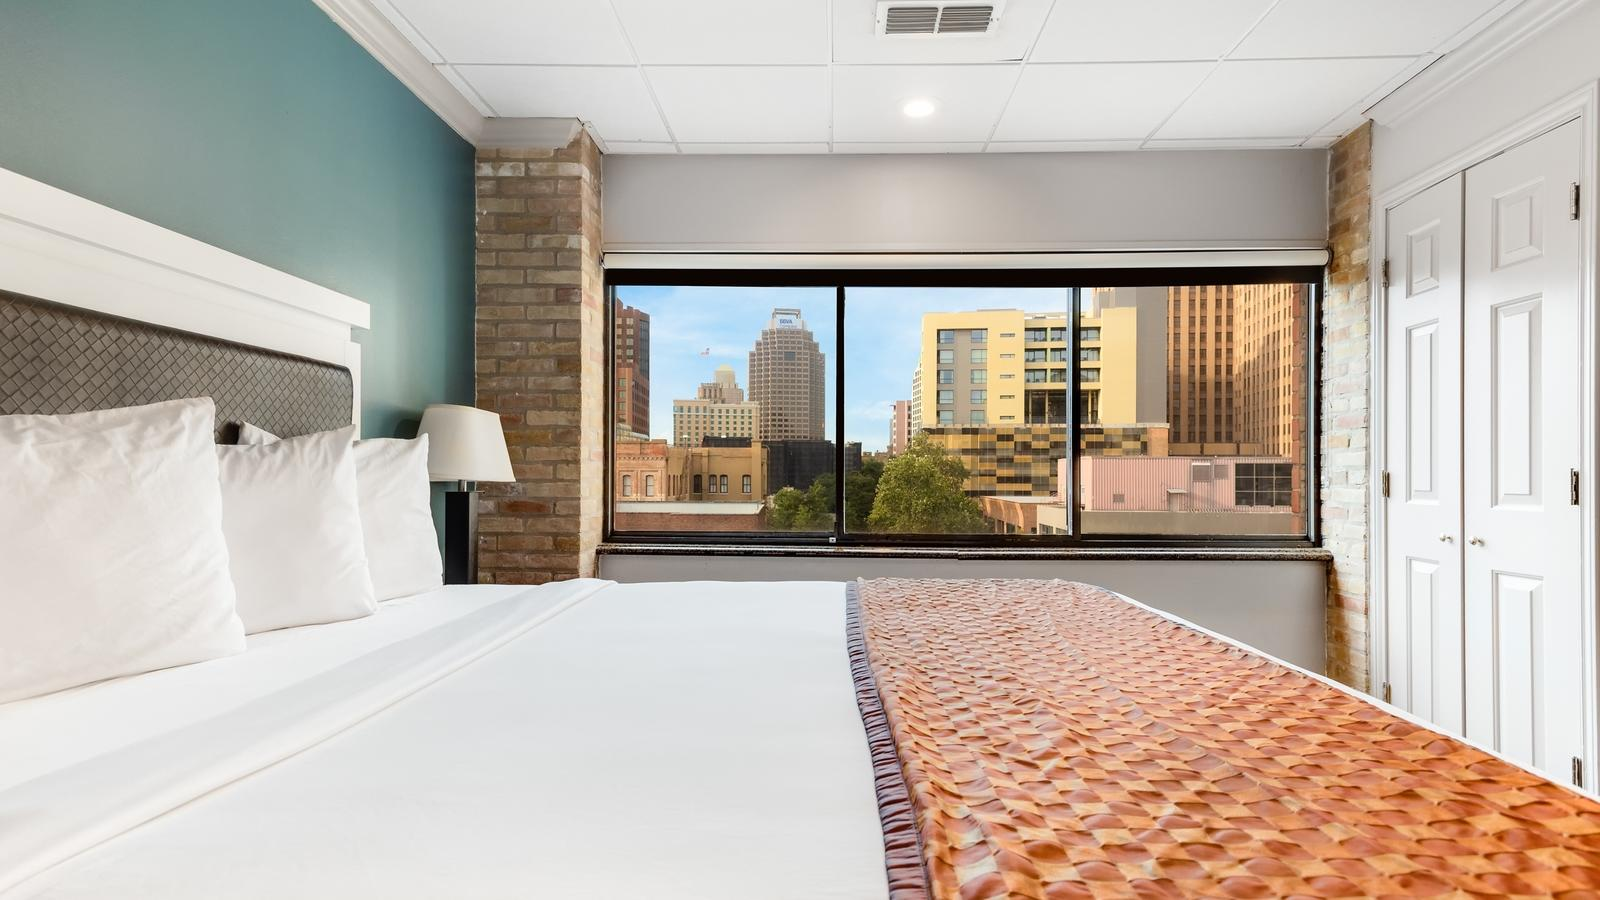 King bed with city view from window